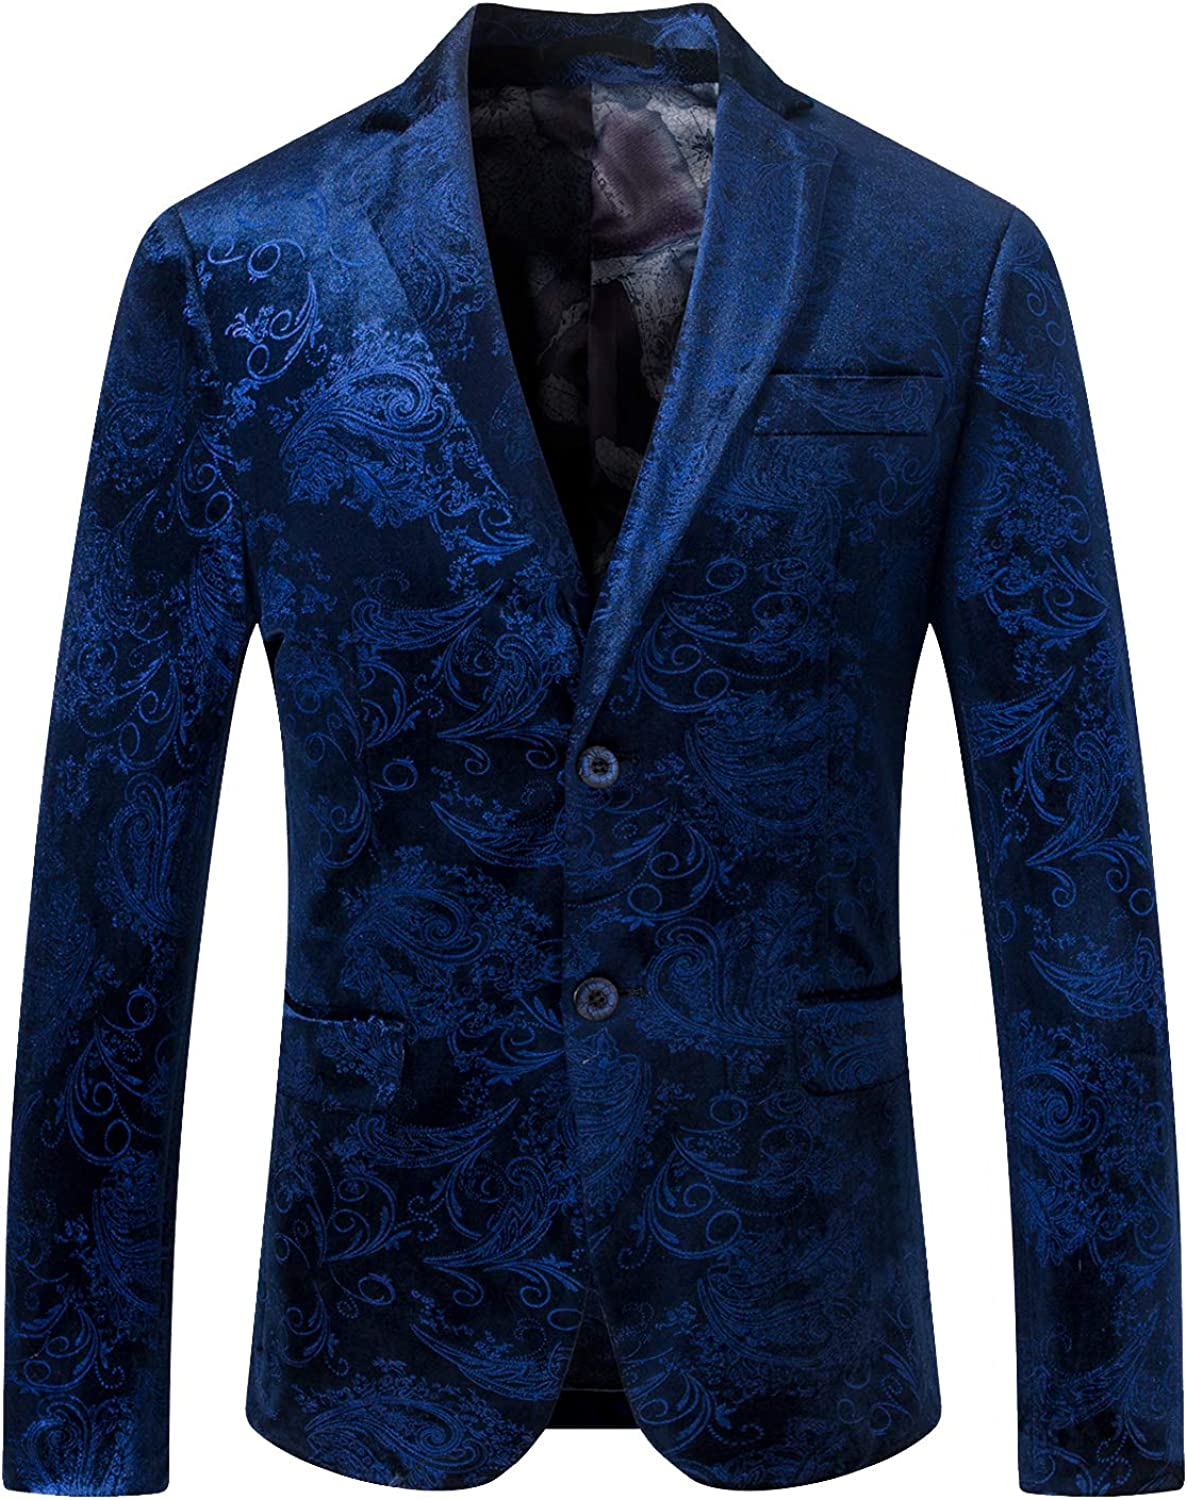 SuiSional Men's Luxury Dress Slim Fit Jacket Choice Suit and Tuxedo Sty 5 ☆ very popular